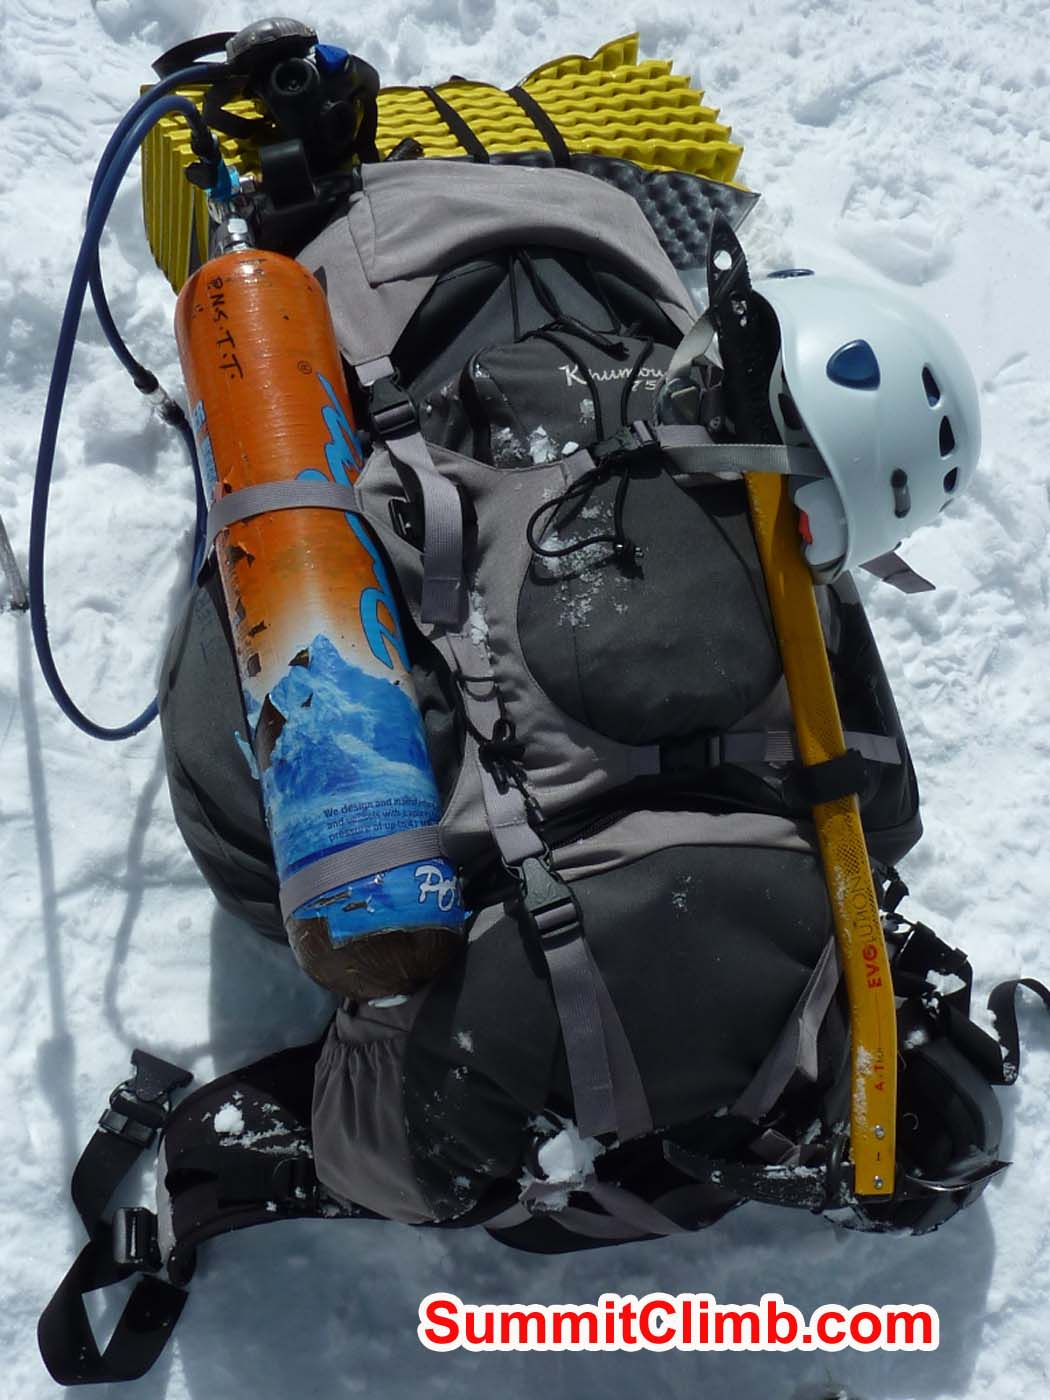 Summit rucksack. Photo by Pascal Tiercelin